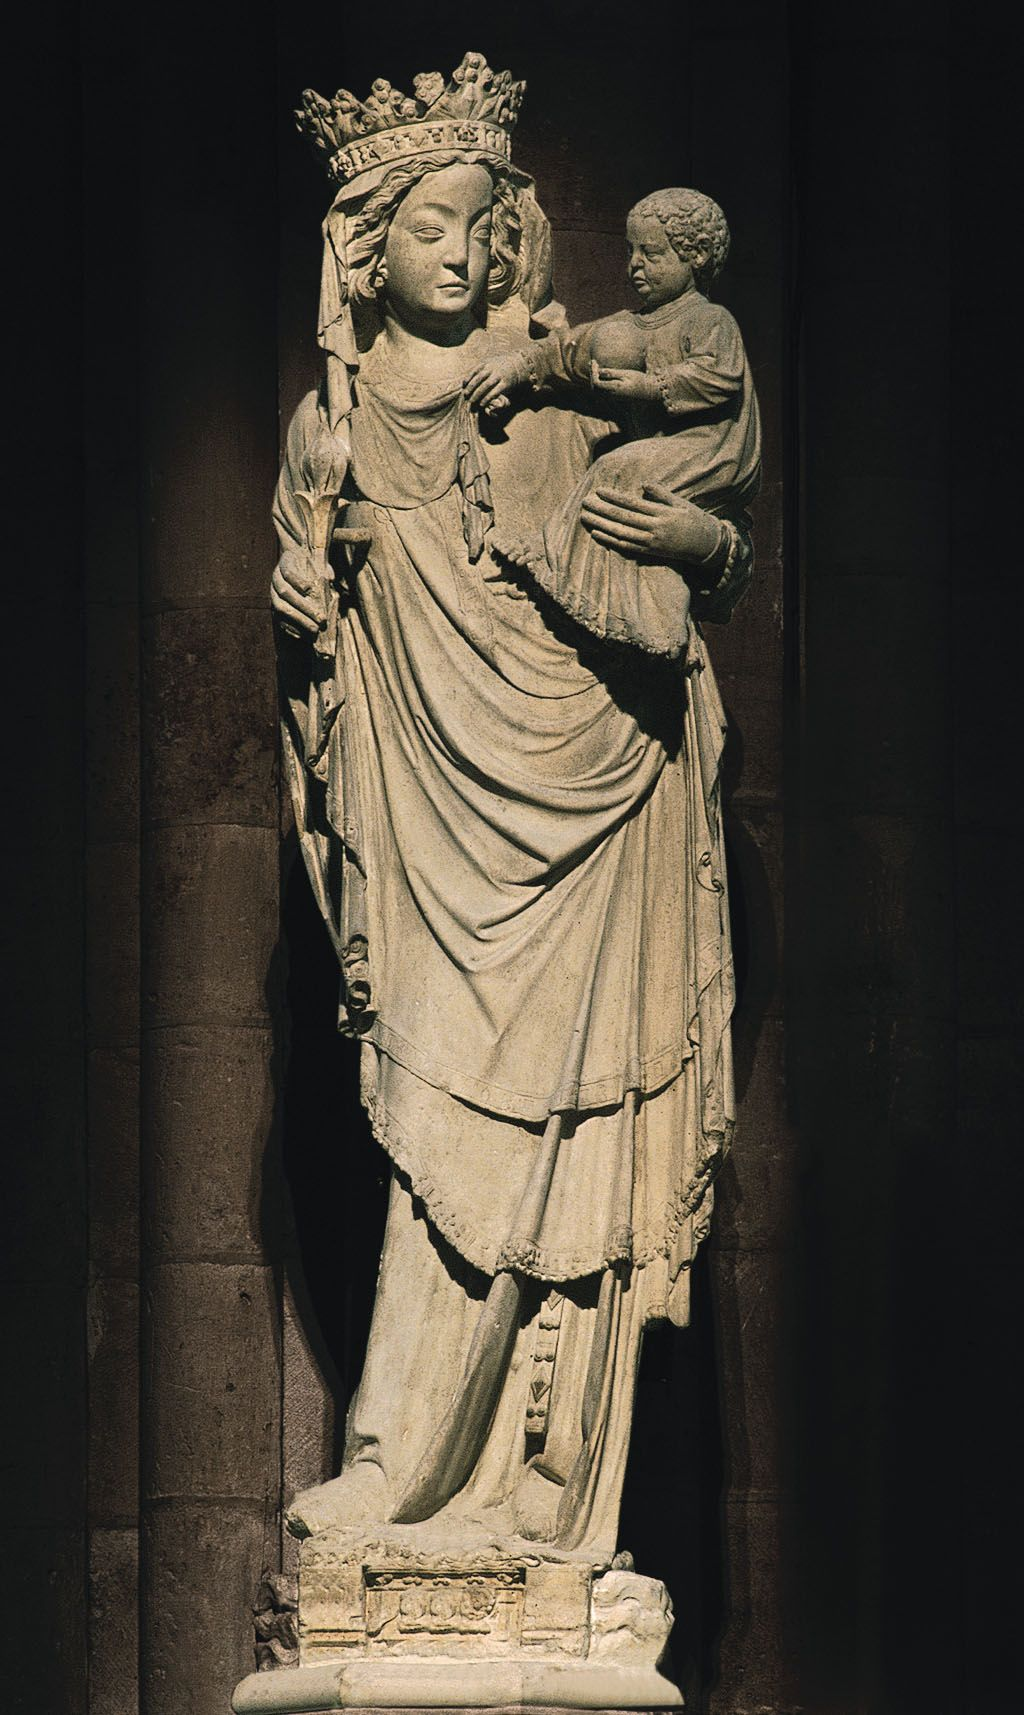 LATE GOTHIC SCULPTURE Virgin And Child Of Paris Notre Dame France Early 14th Century Notice The Reappearance S Curve Or